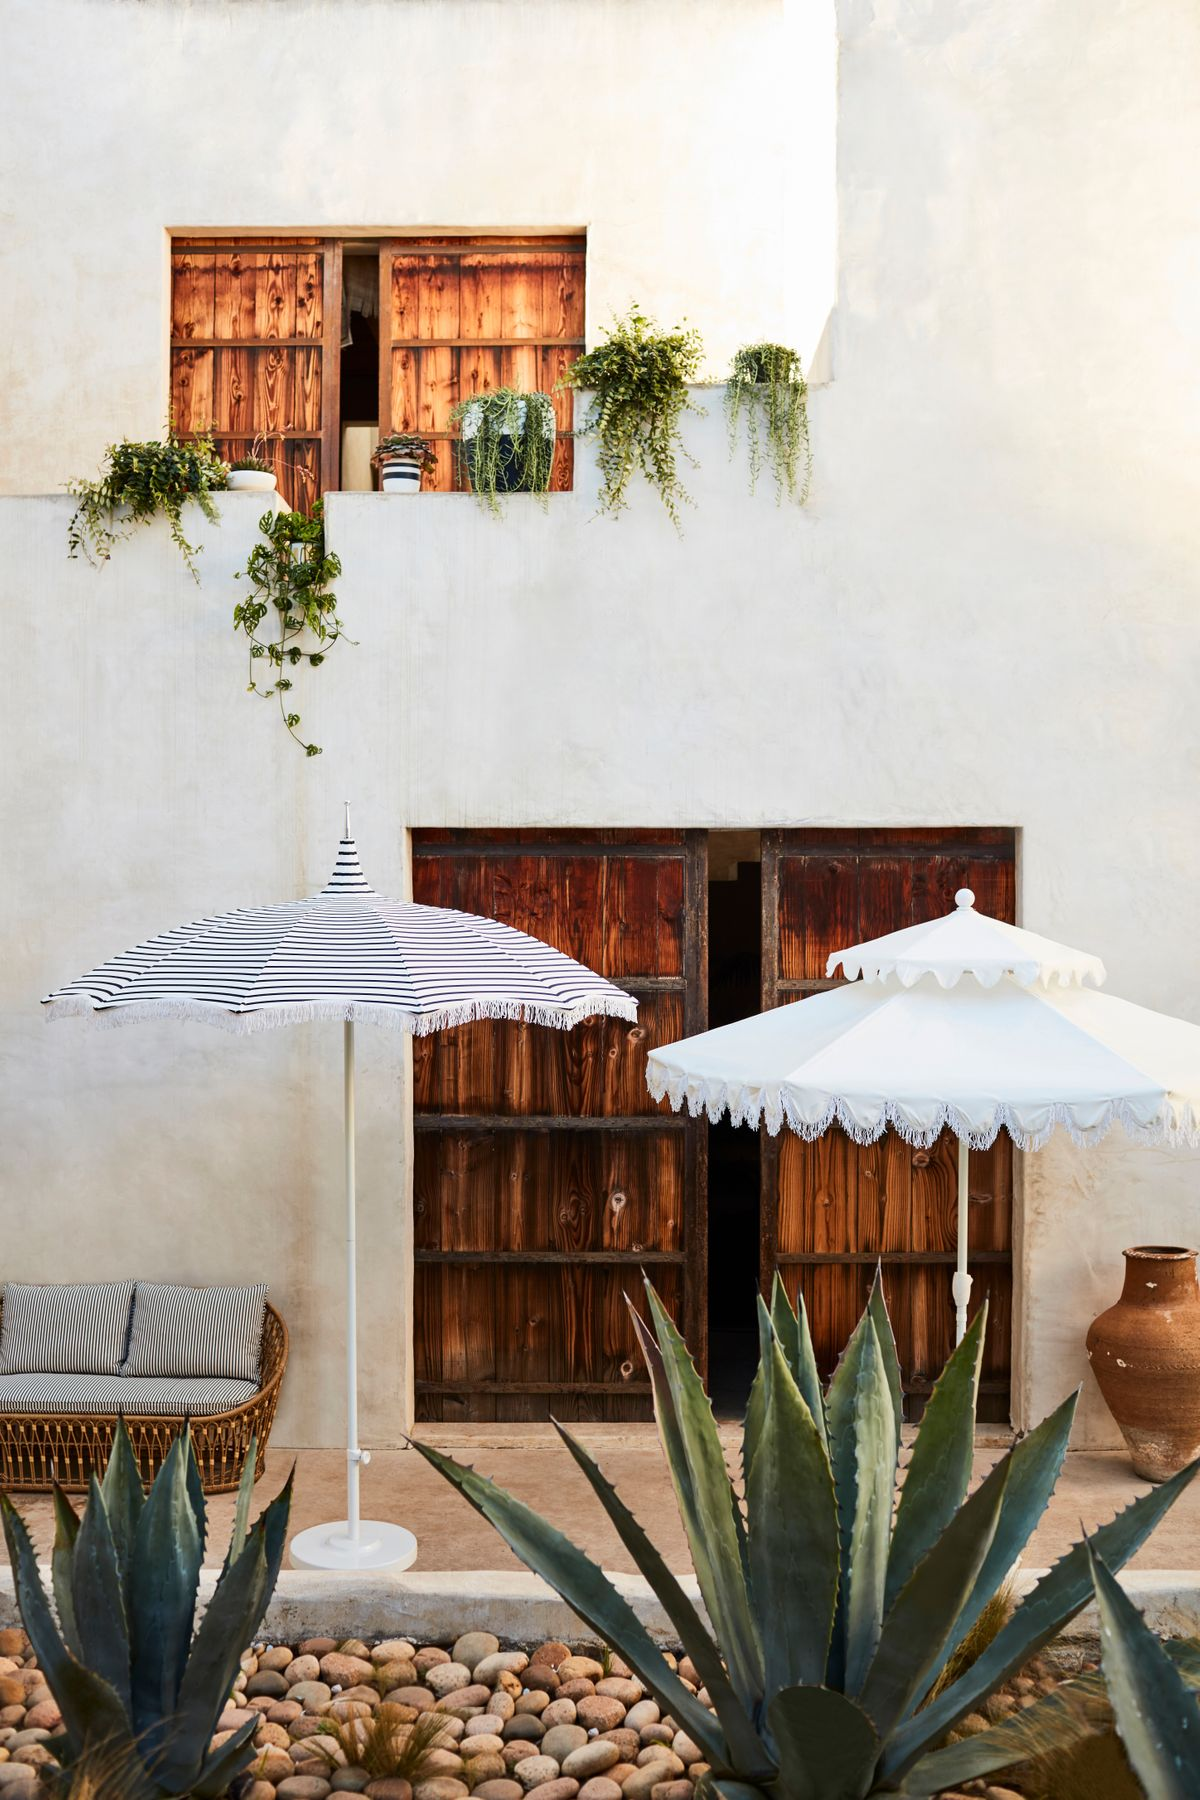 OKL_SIT_00077967_CROP_LS_Outdoor Umbrella Spotlight_110.jpg